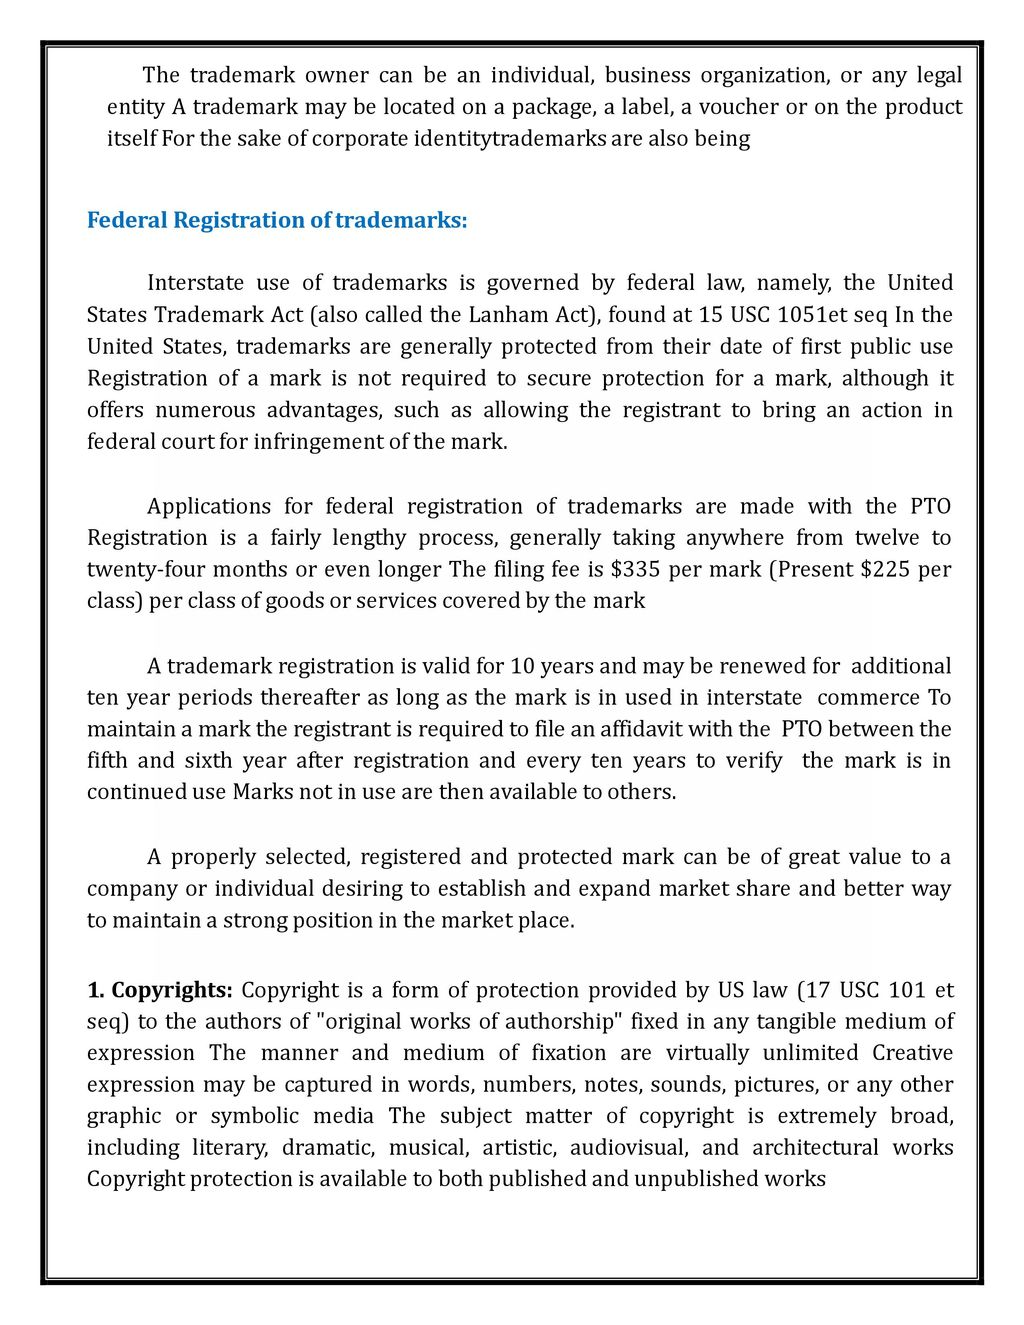 INTELLECTUAL PROPERTY RIGHTS LECTURE NOTES  - ppt download